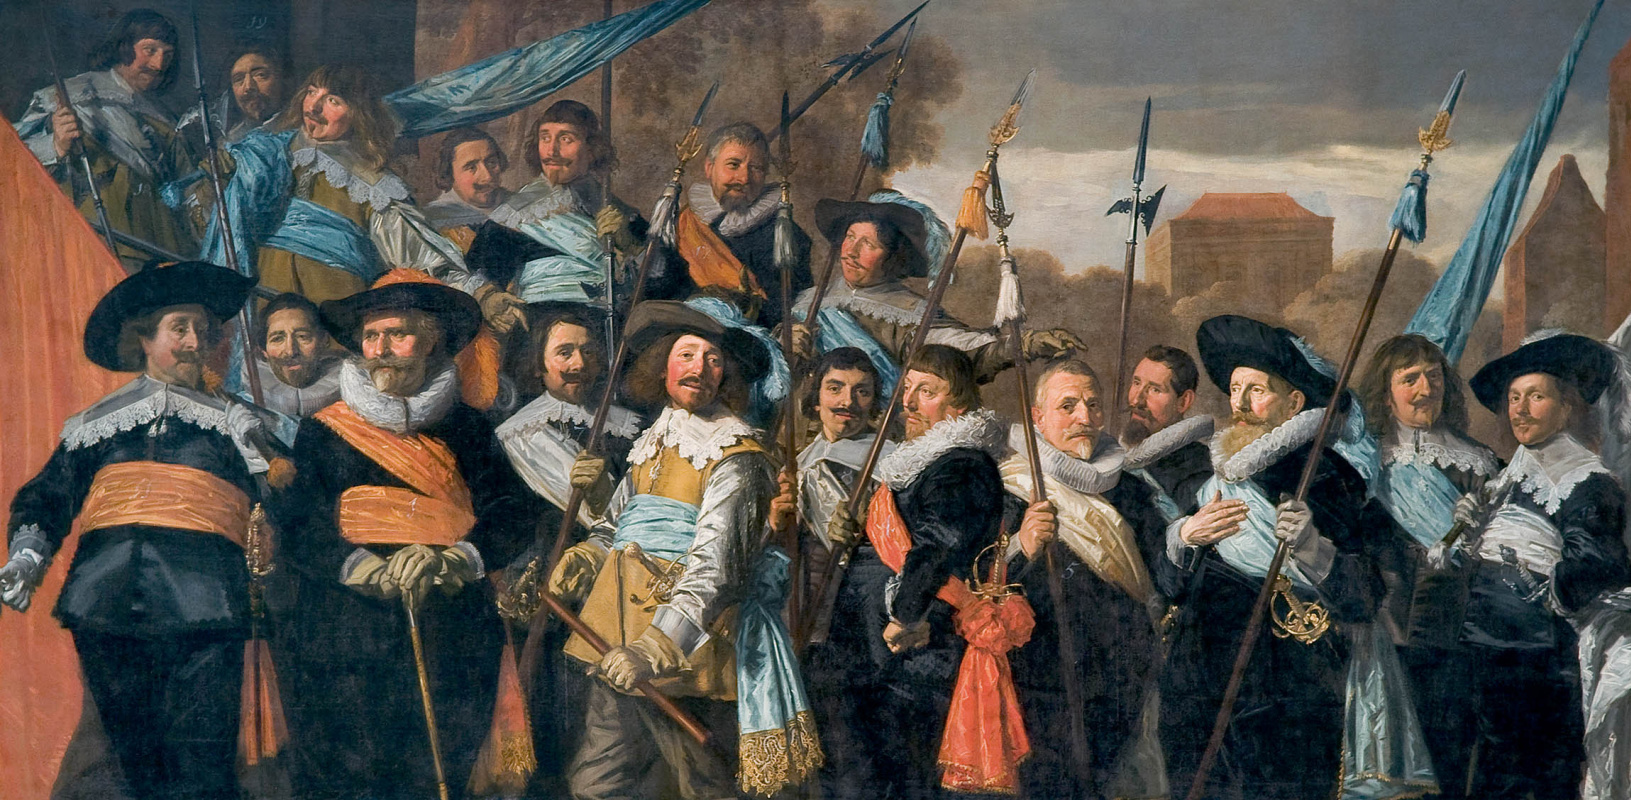 Frans Hals. Group portrait of officers and sergeants in a rifle company of St. George